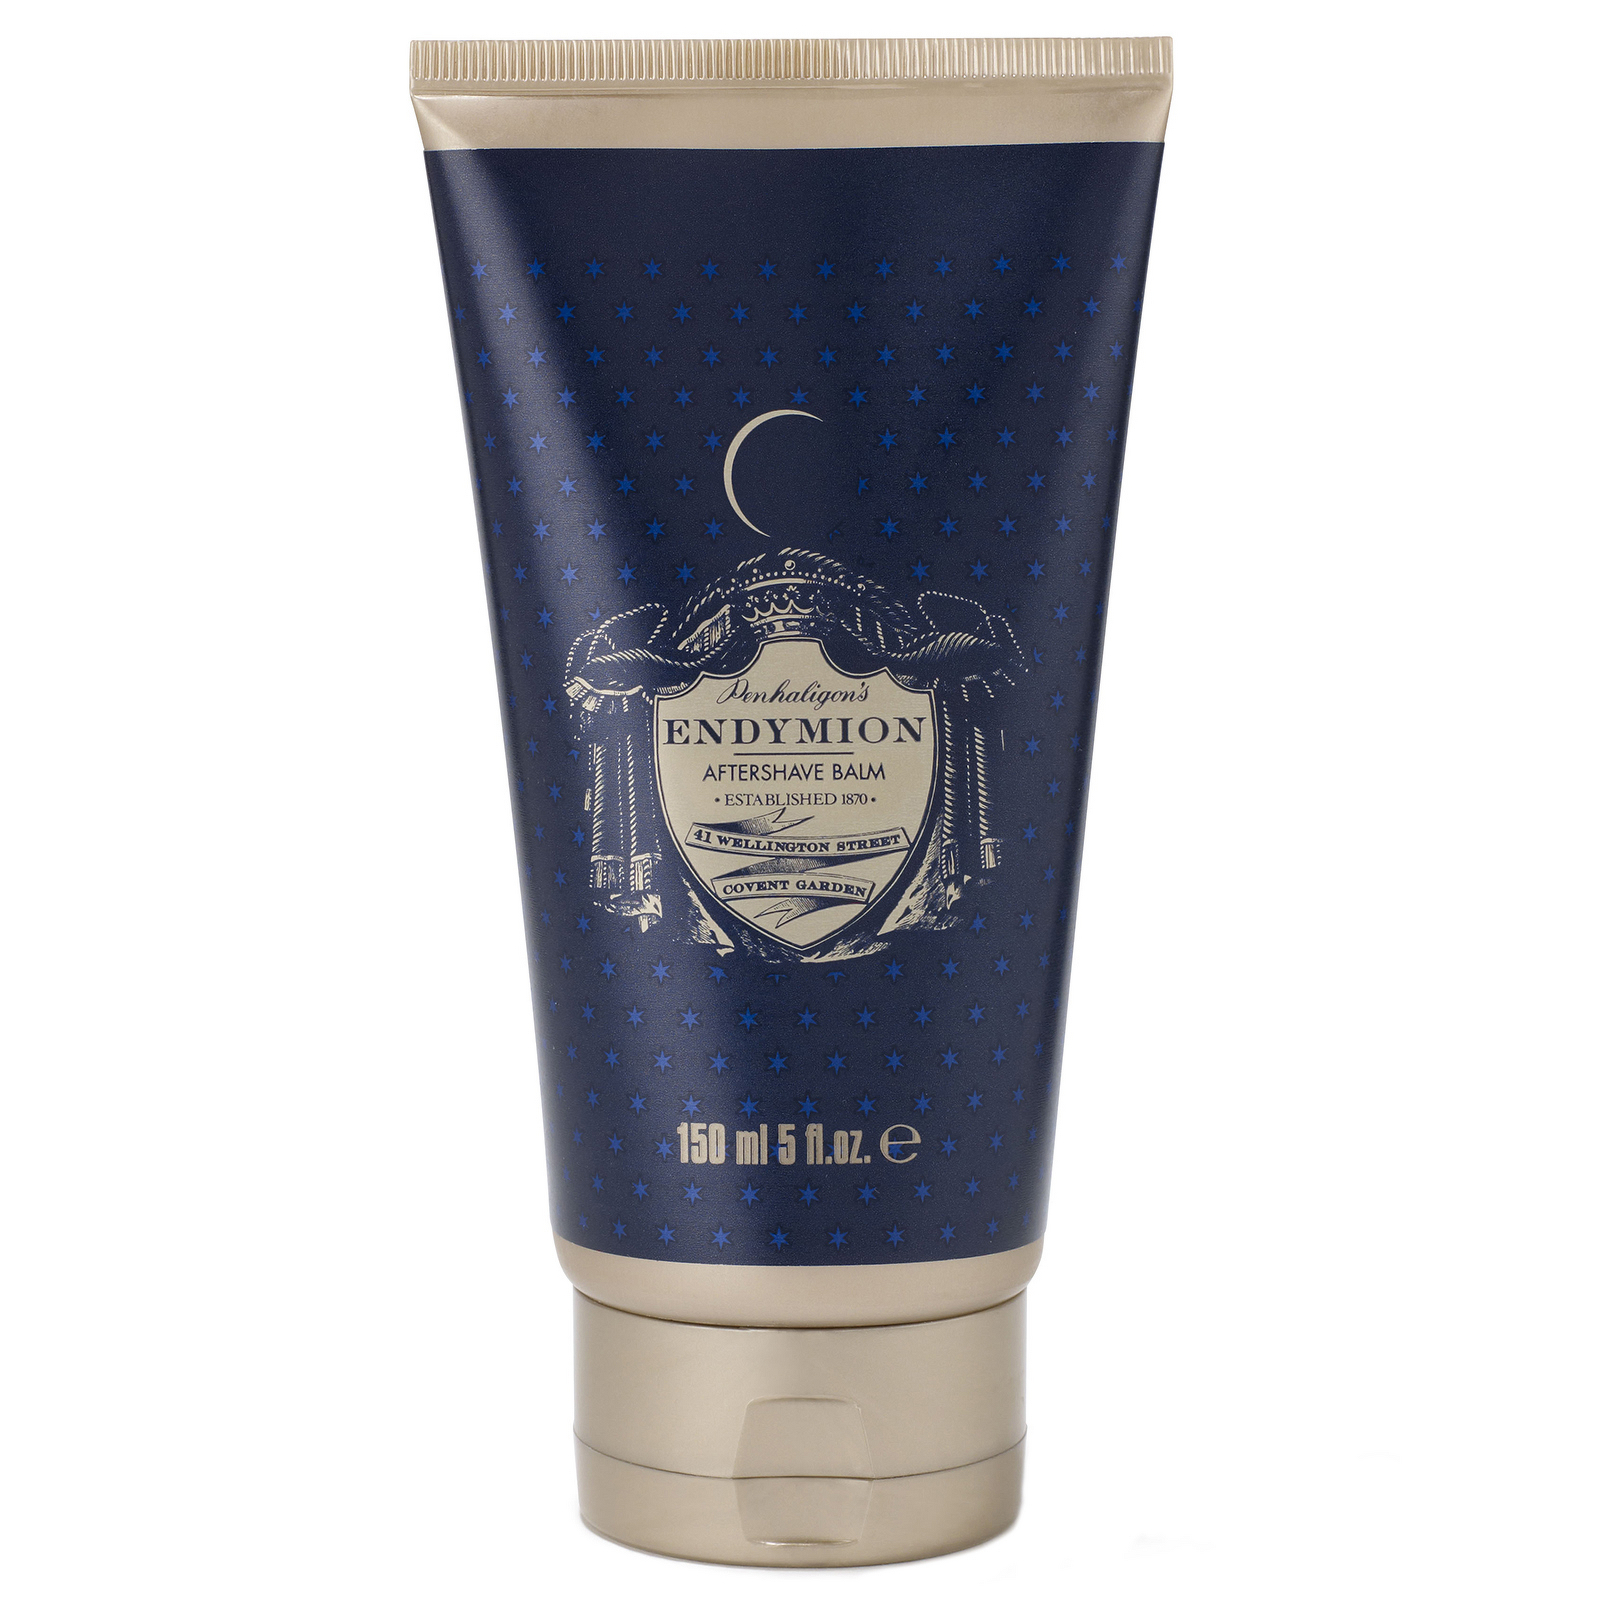 Penhaligon's Endymion Aftershave Balm 150ml / 5 fl.oz.